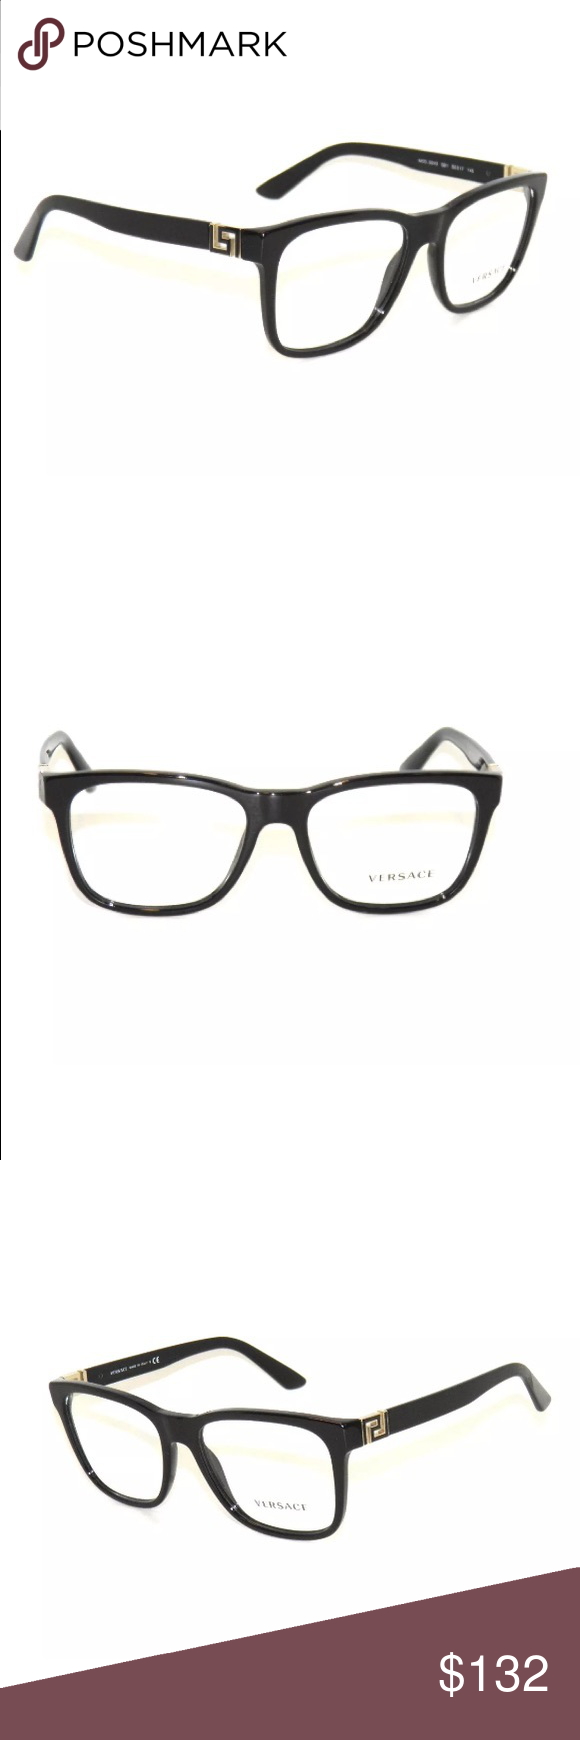 1e7a9897525 Versace Eyeglasses 3243 Black Frame New with clear lens Comes with Versace  case Authentic Versace Accessories Glasses